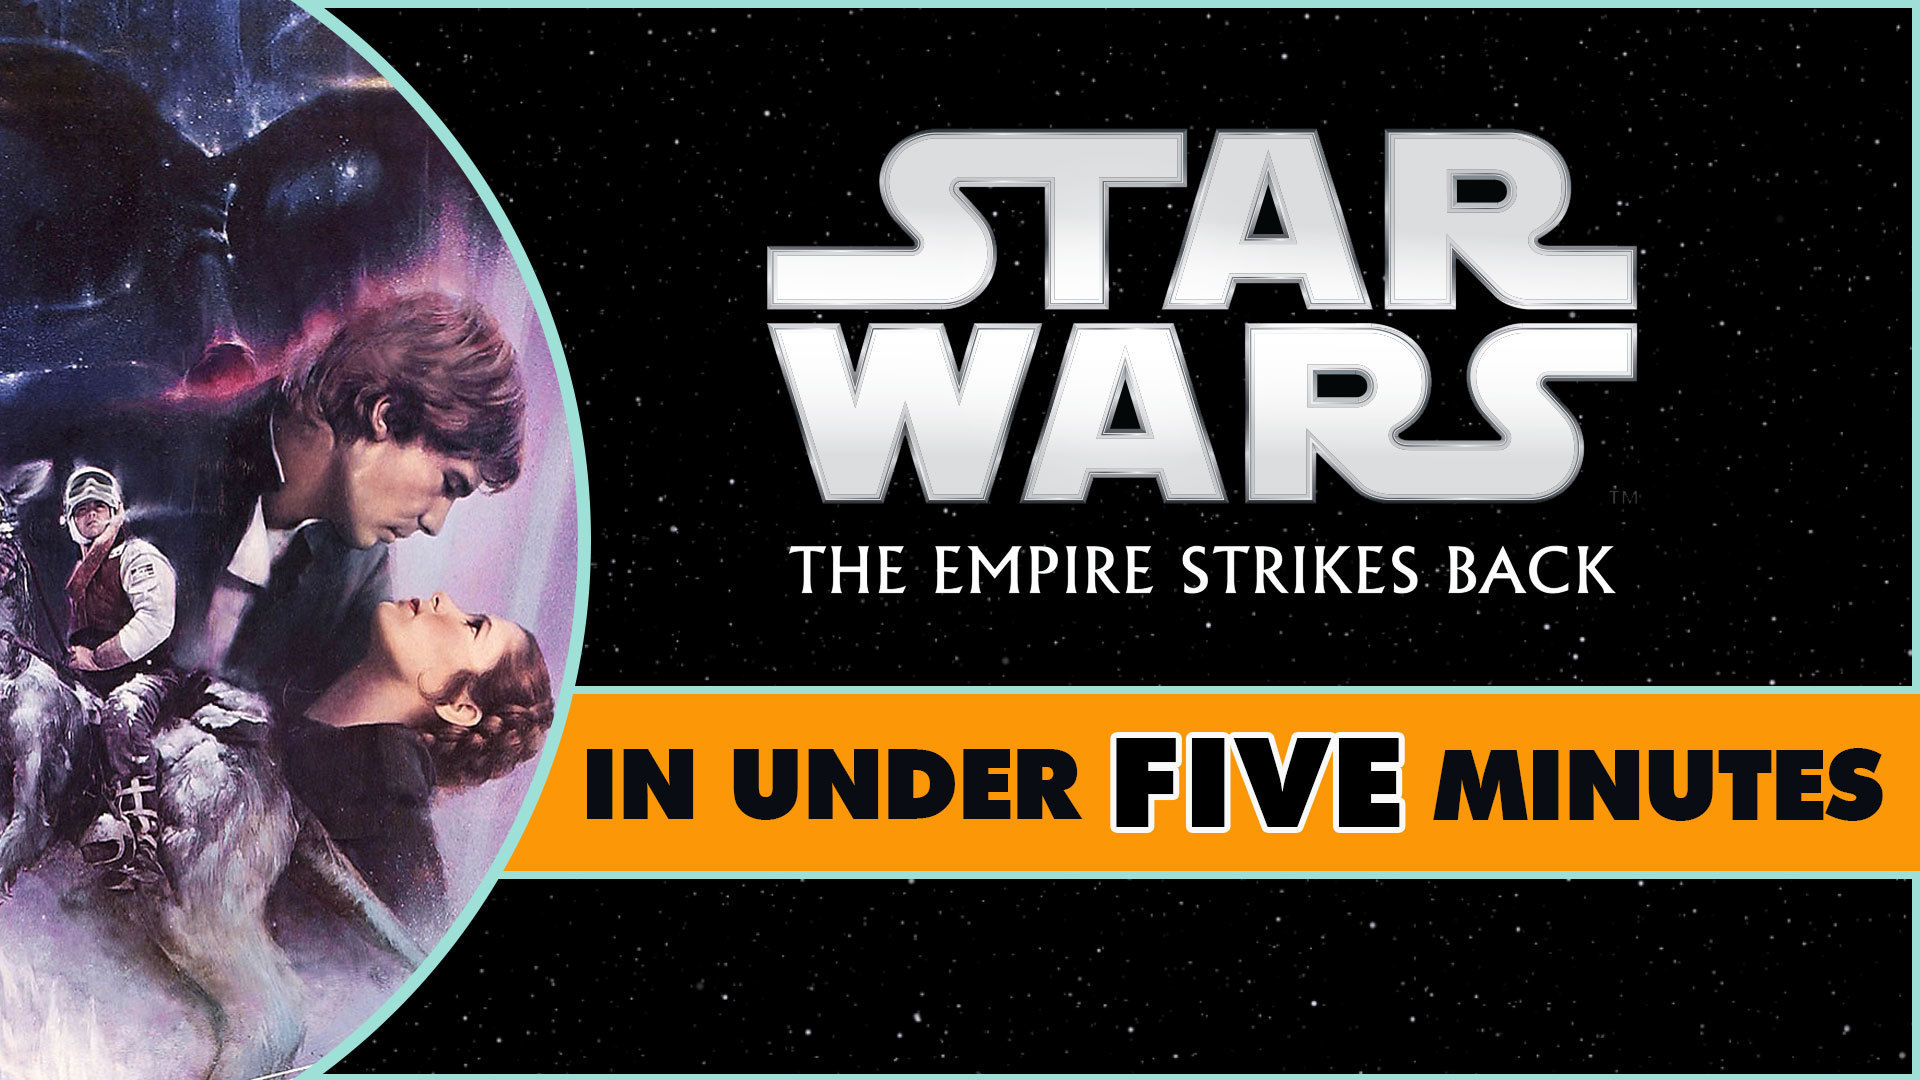 Star Wars: The Empire Strikes Back in Under Five Minutes